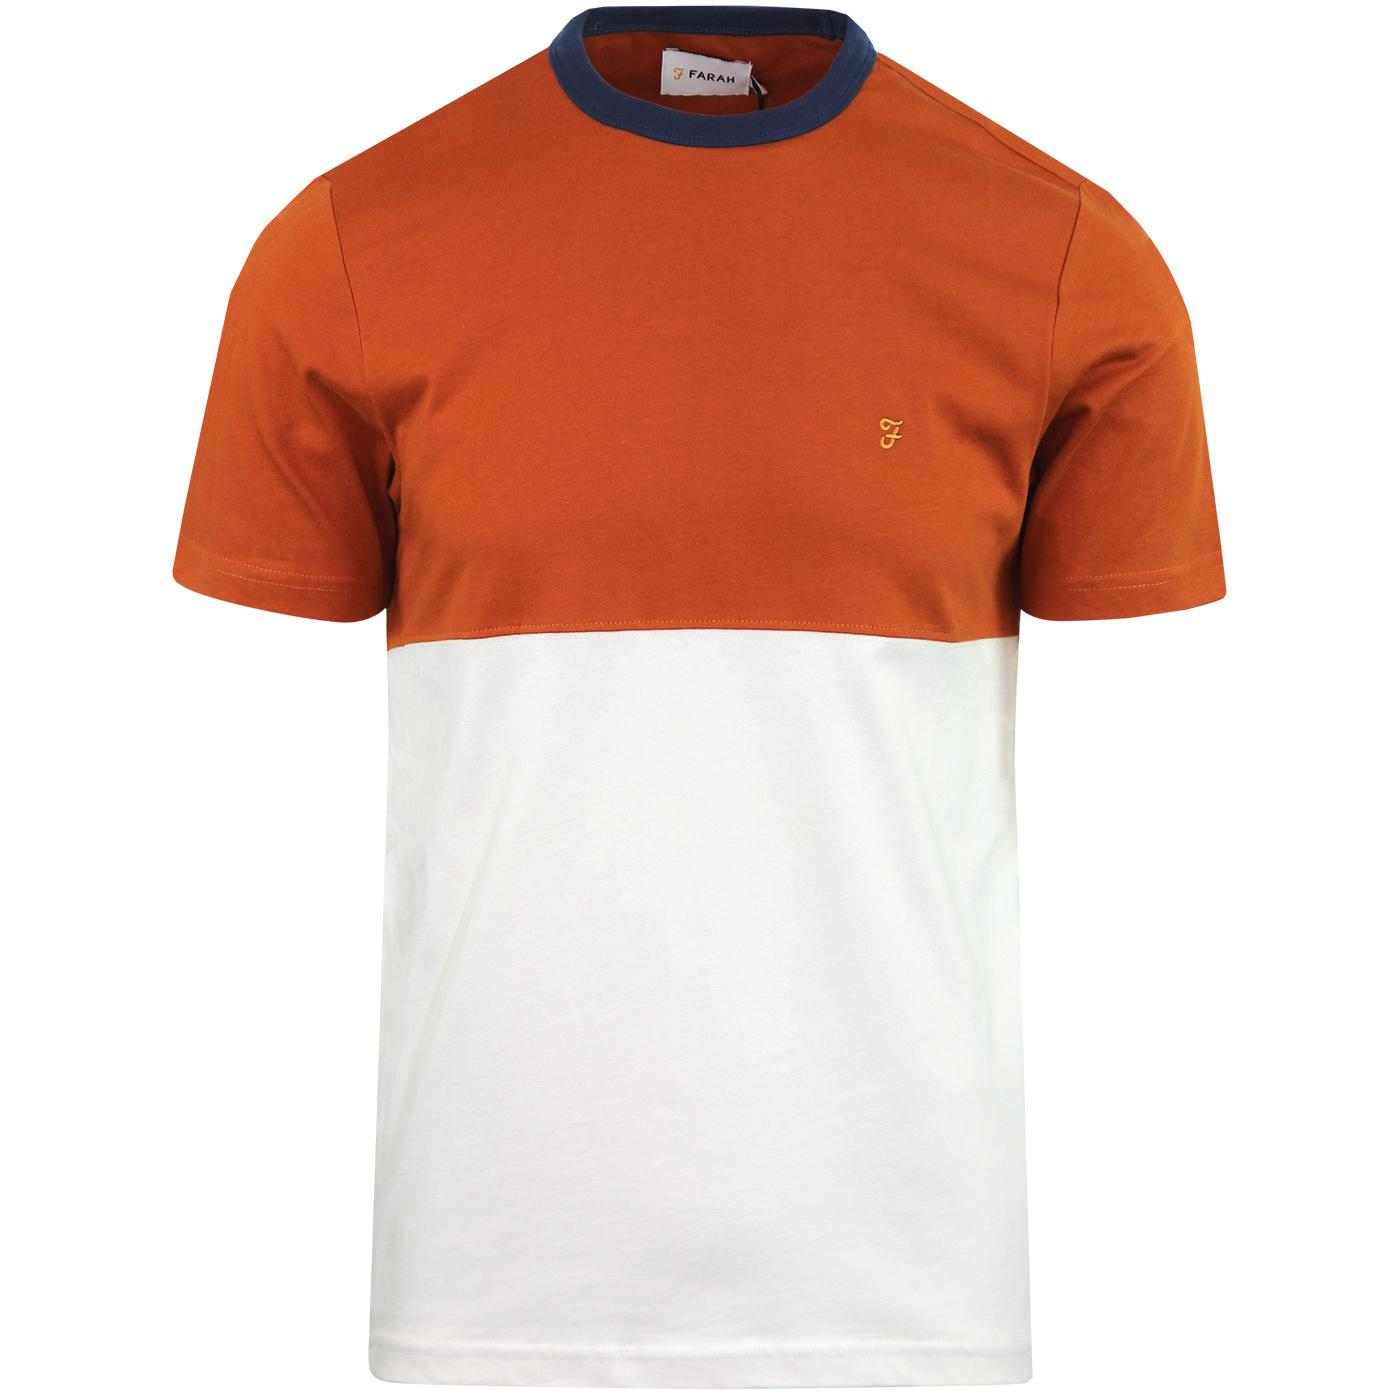 Ewood FARAH Retro 70s Colour Block Tee (Goldfish)